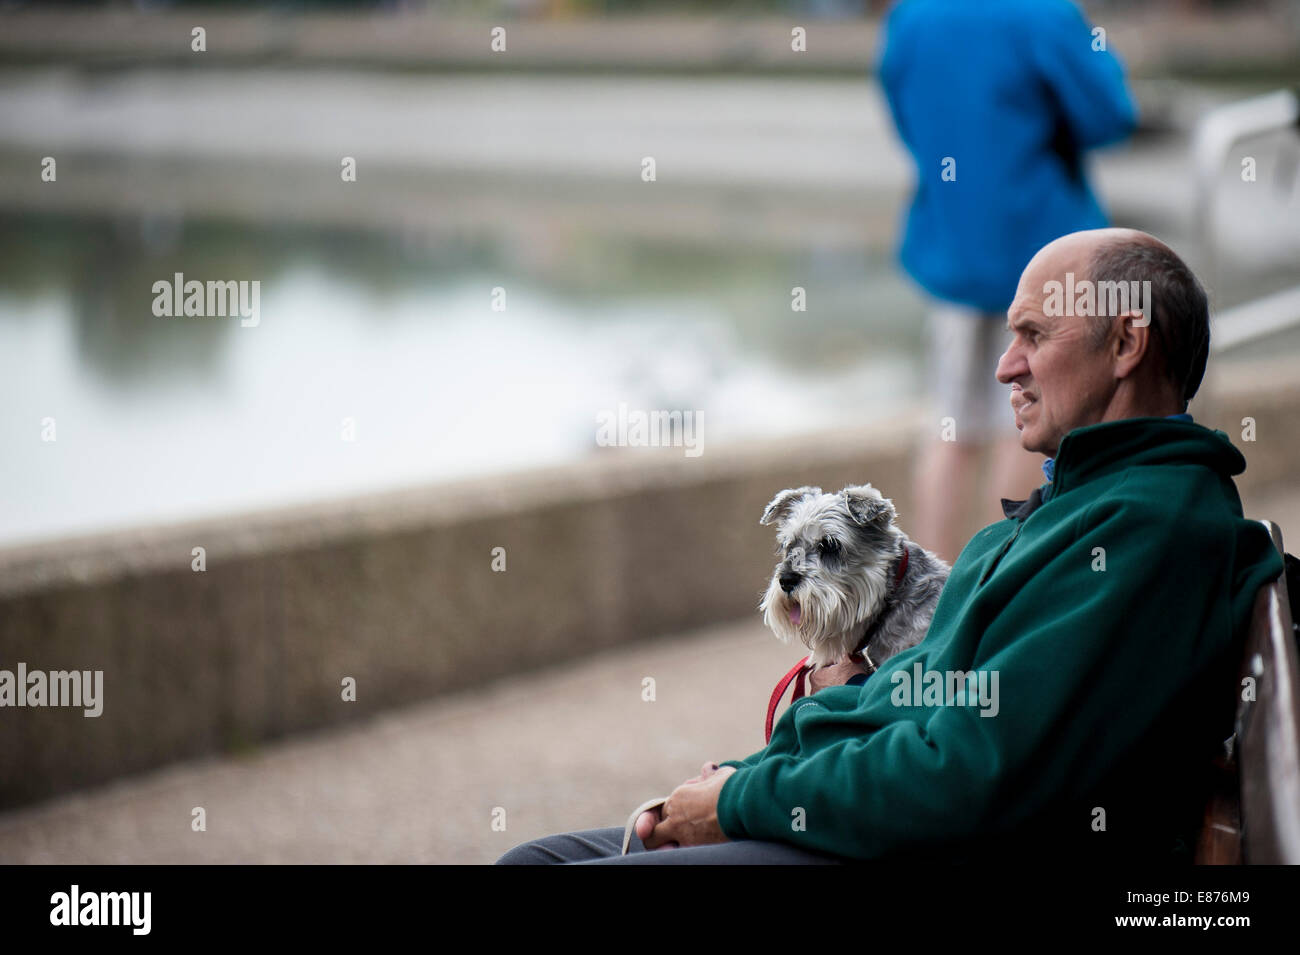 People and their pet dog. - Stock Image